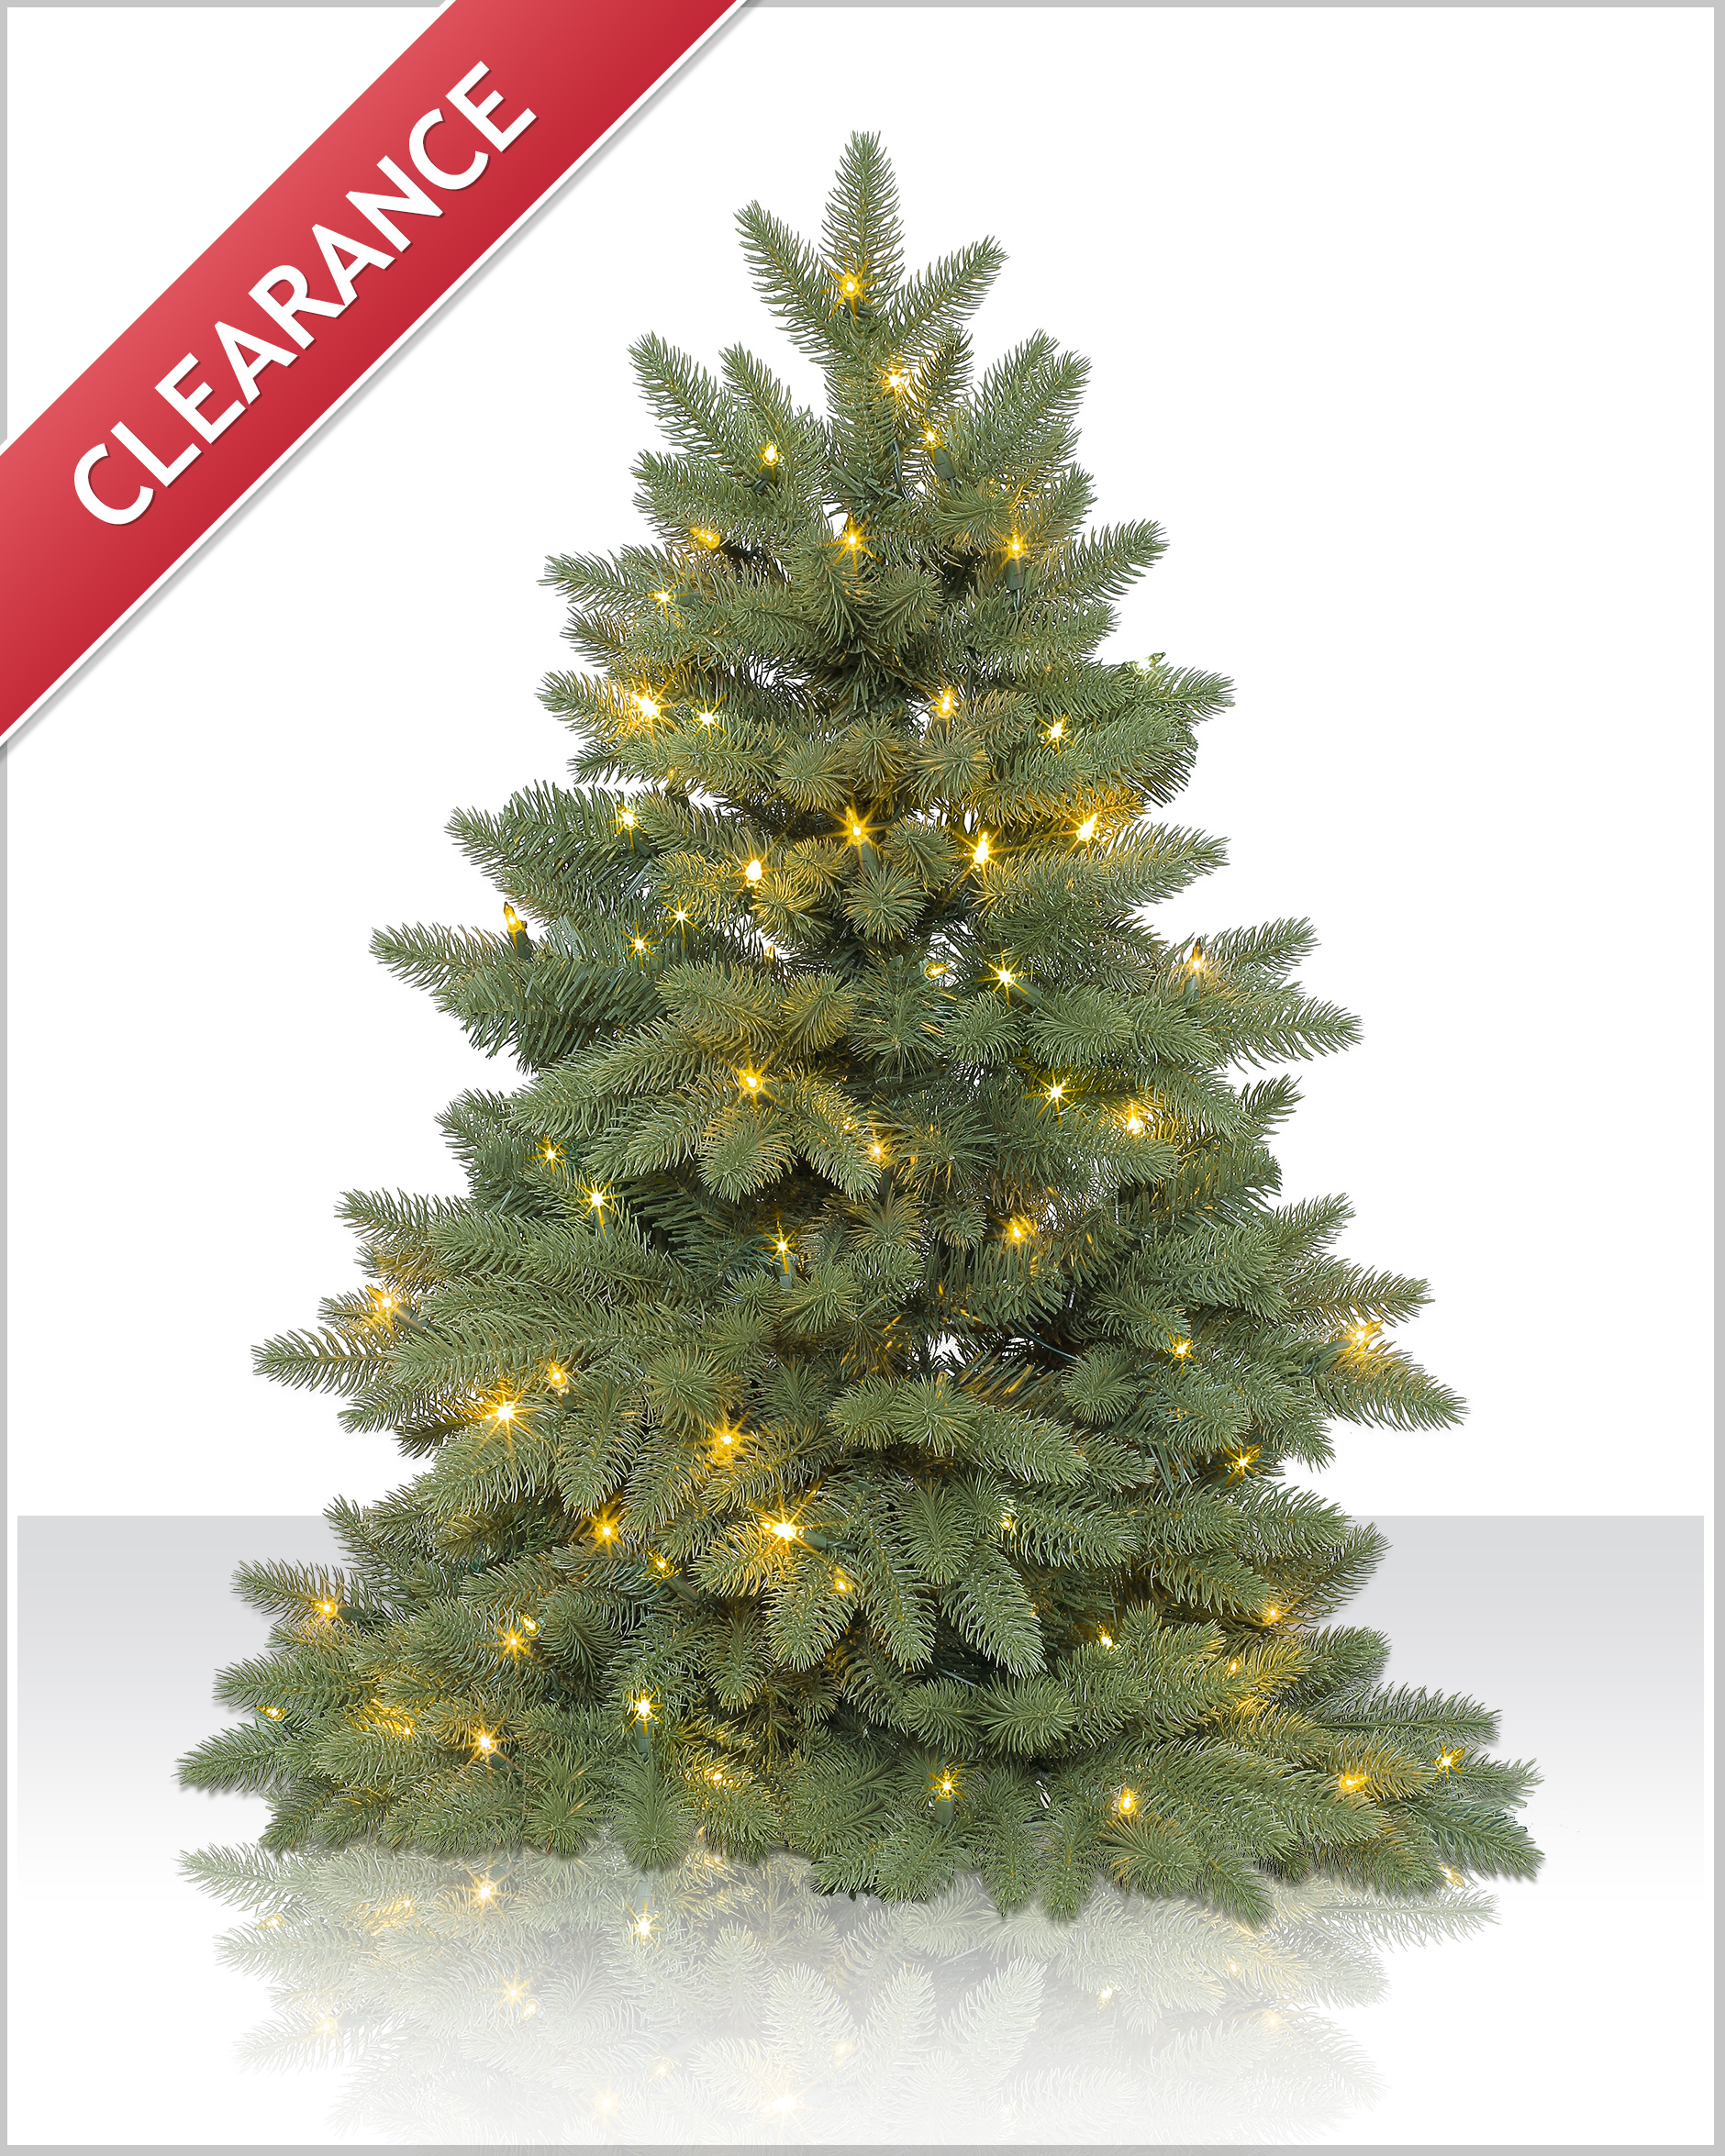 3 Ft Columbia Valley Slim Fir Tree | Christmas Tree Market